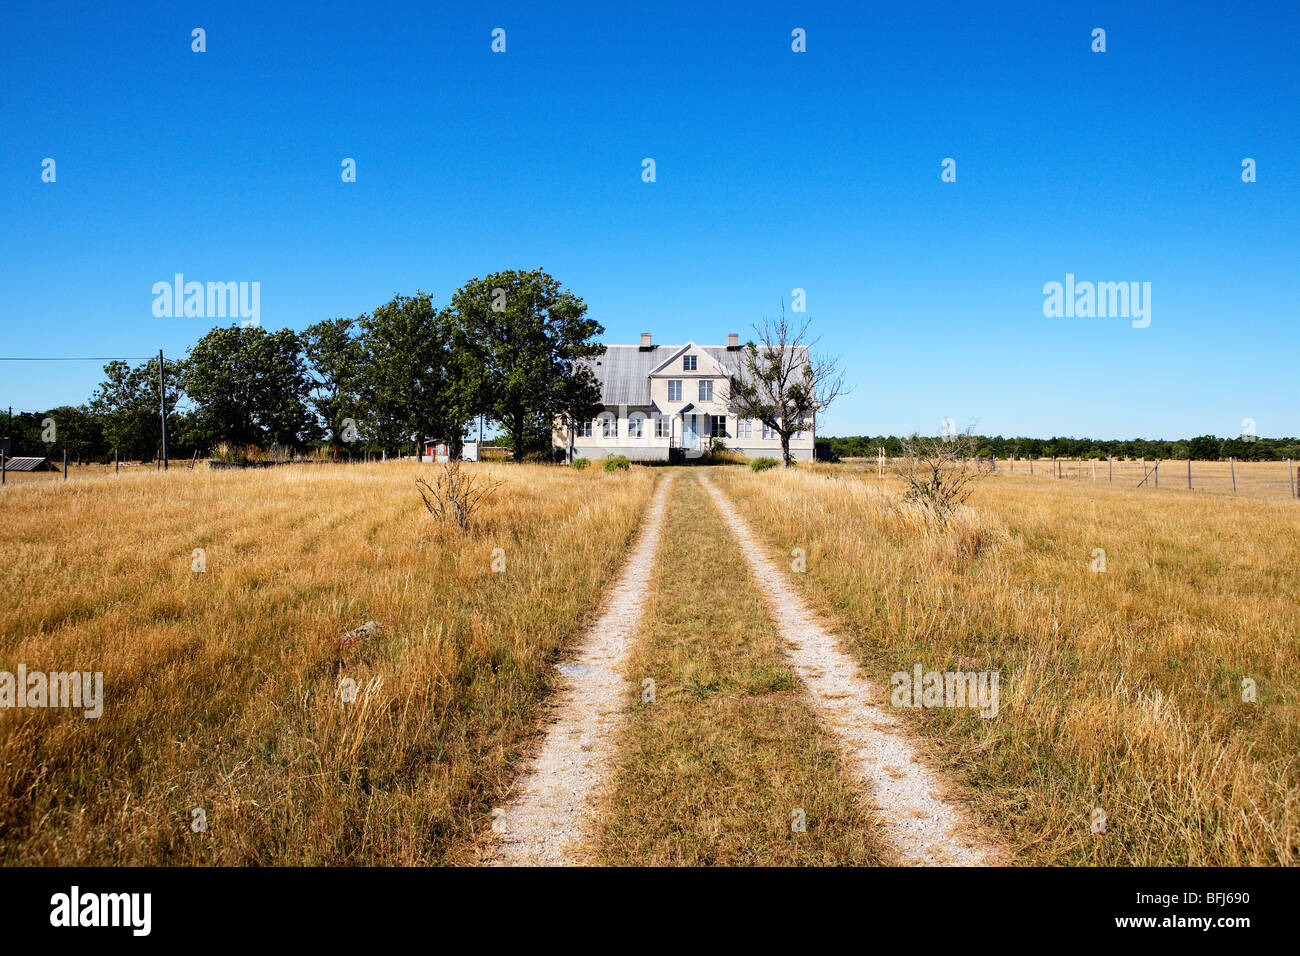 A house in the Swedish countryside, Sweden. - Stock Image